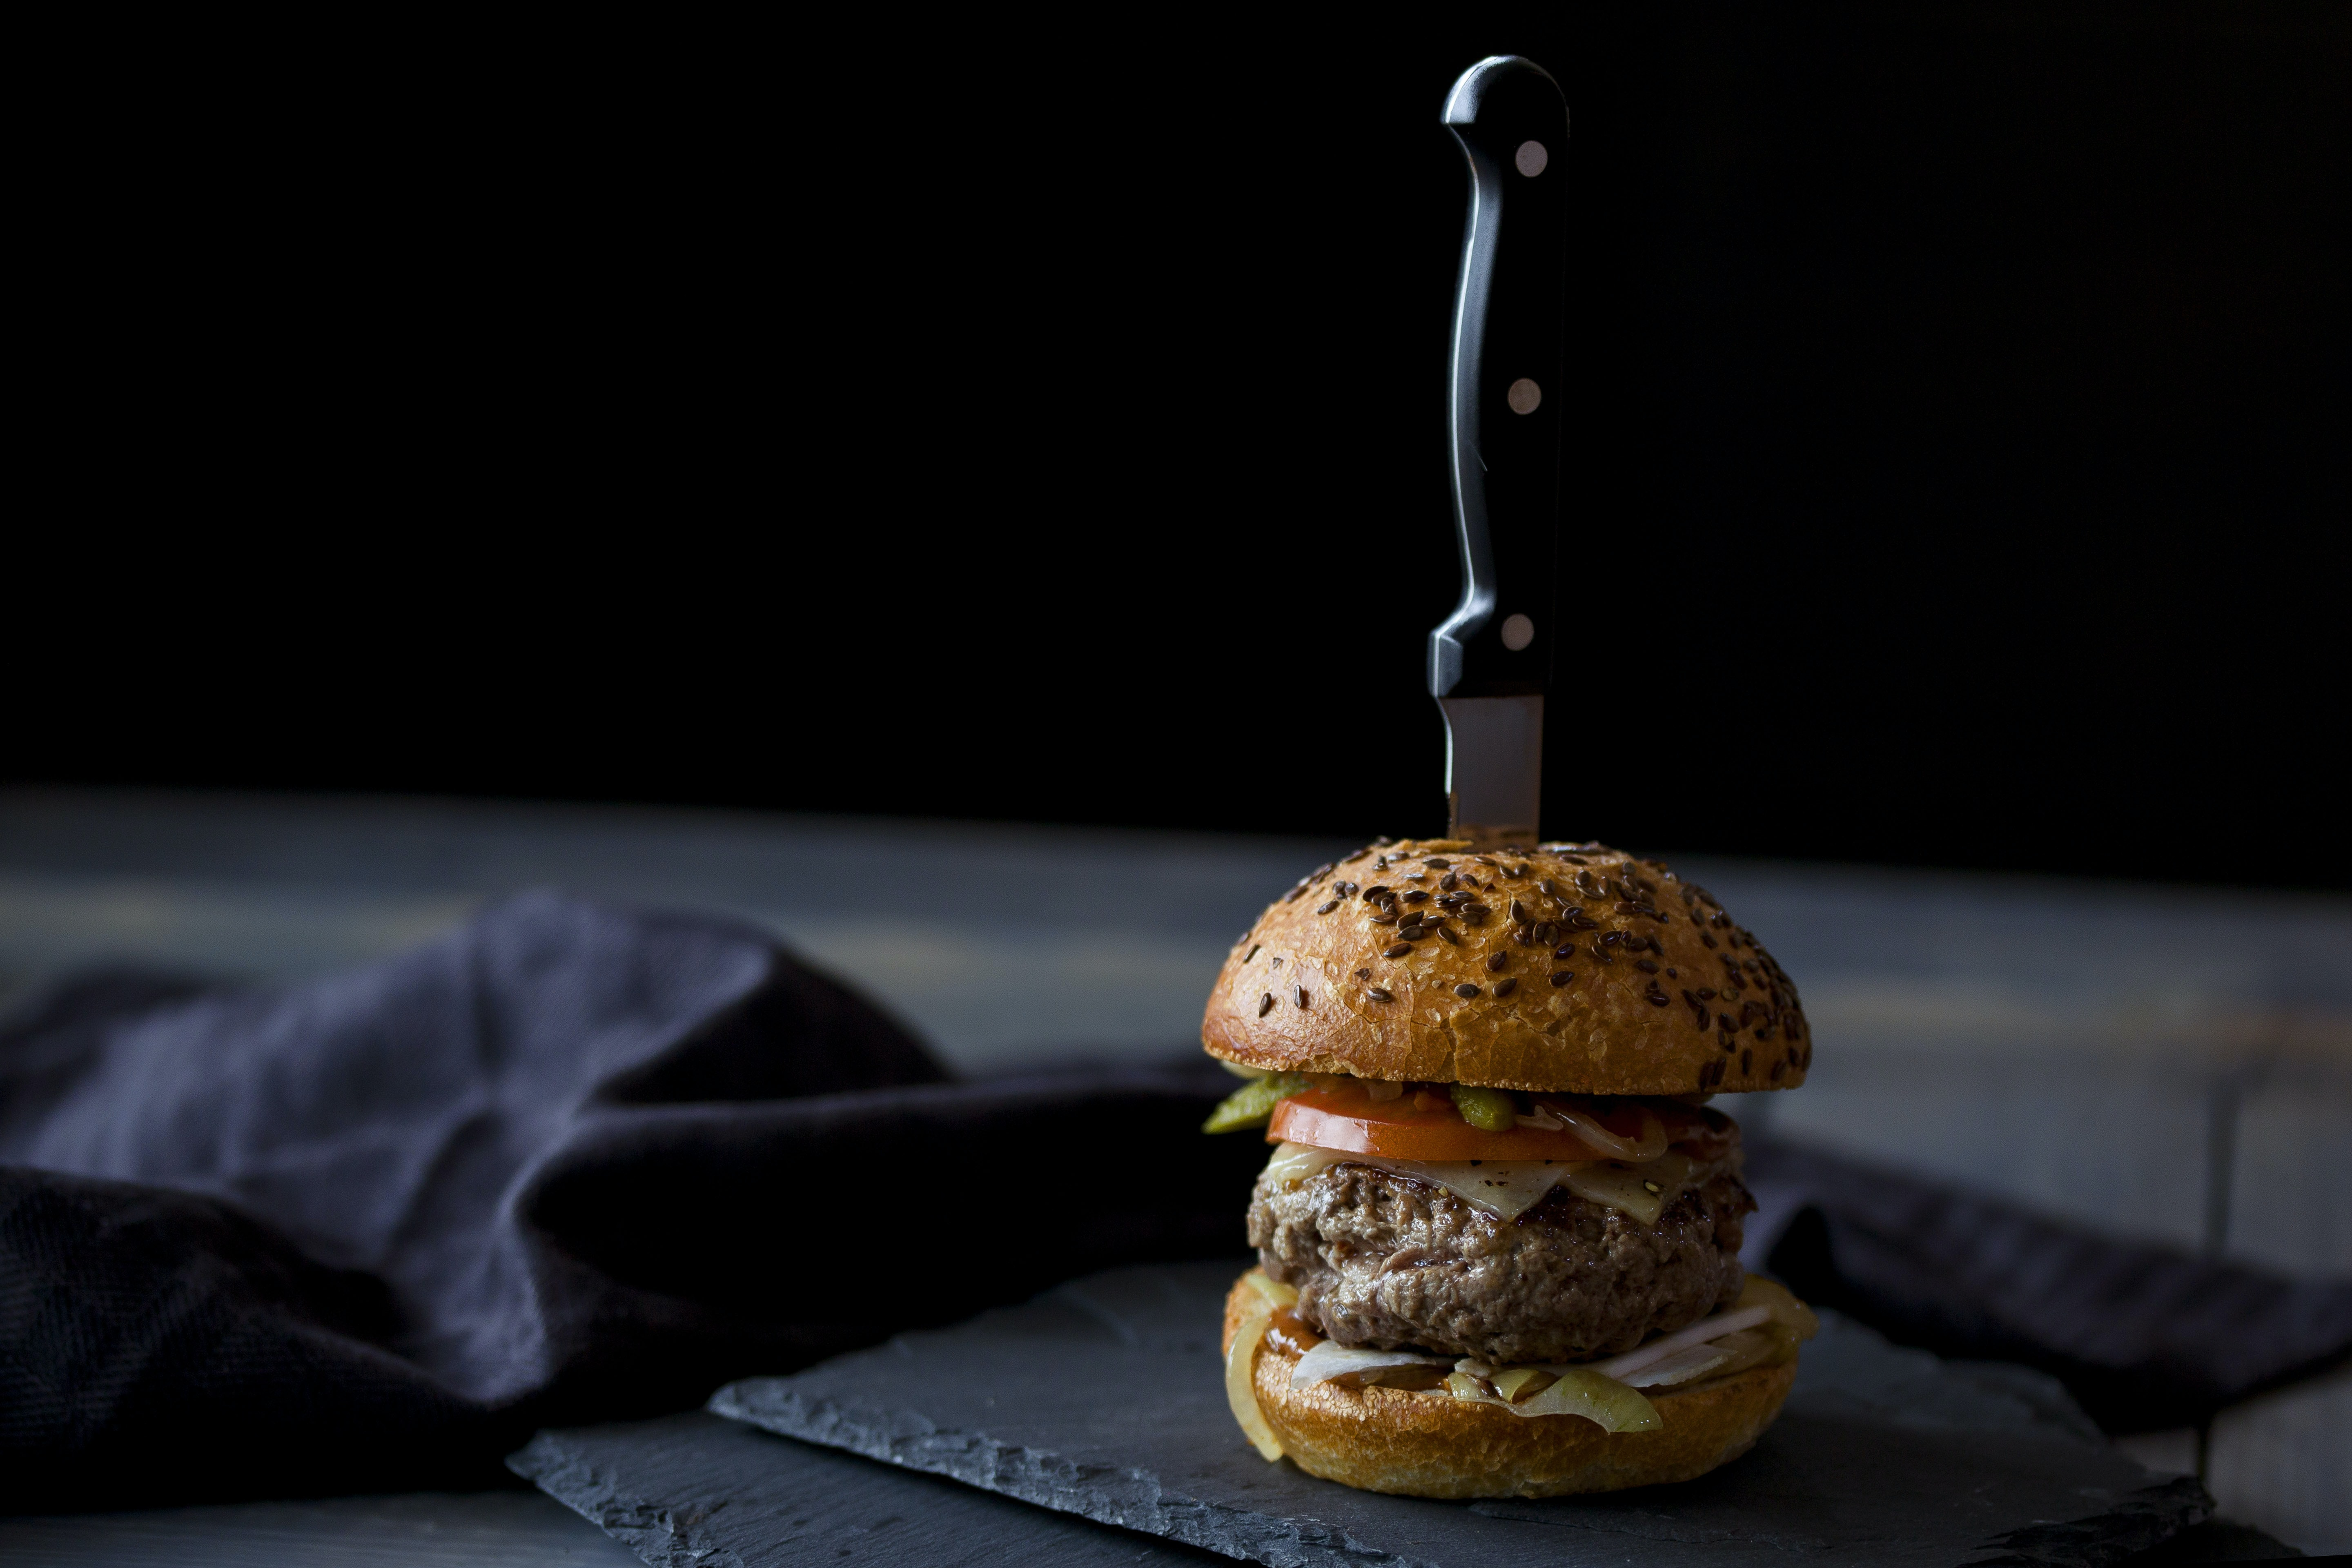 burger skewered with knife near black textile